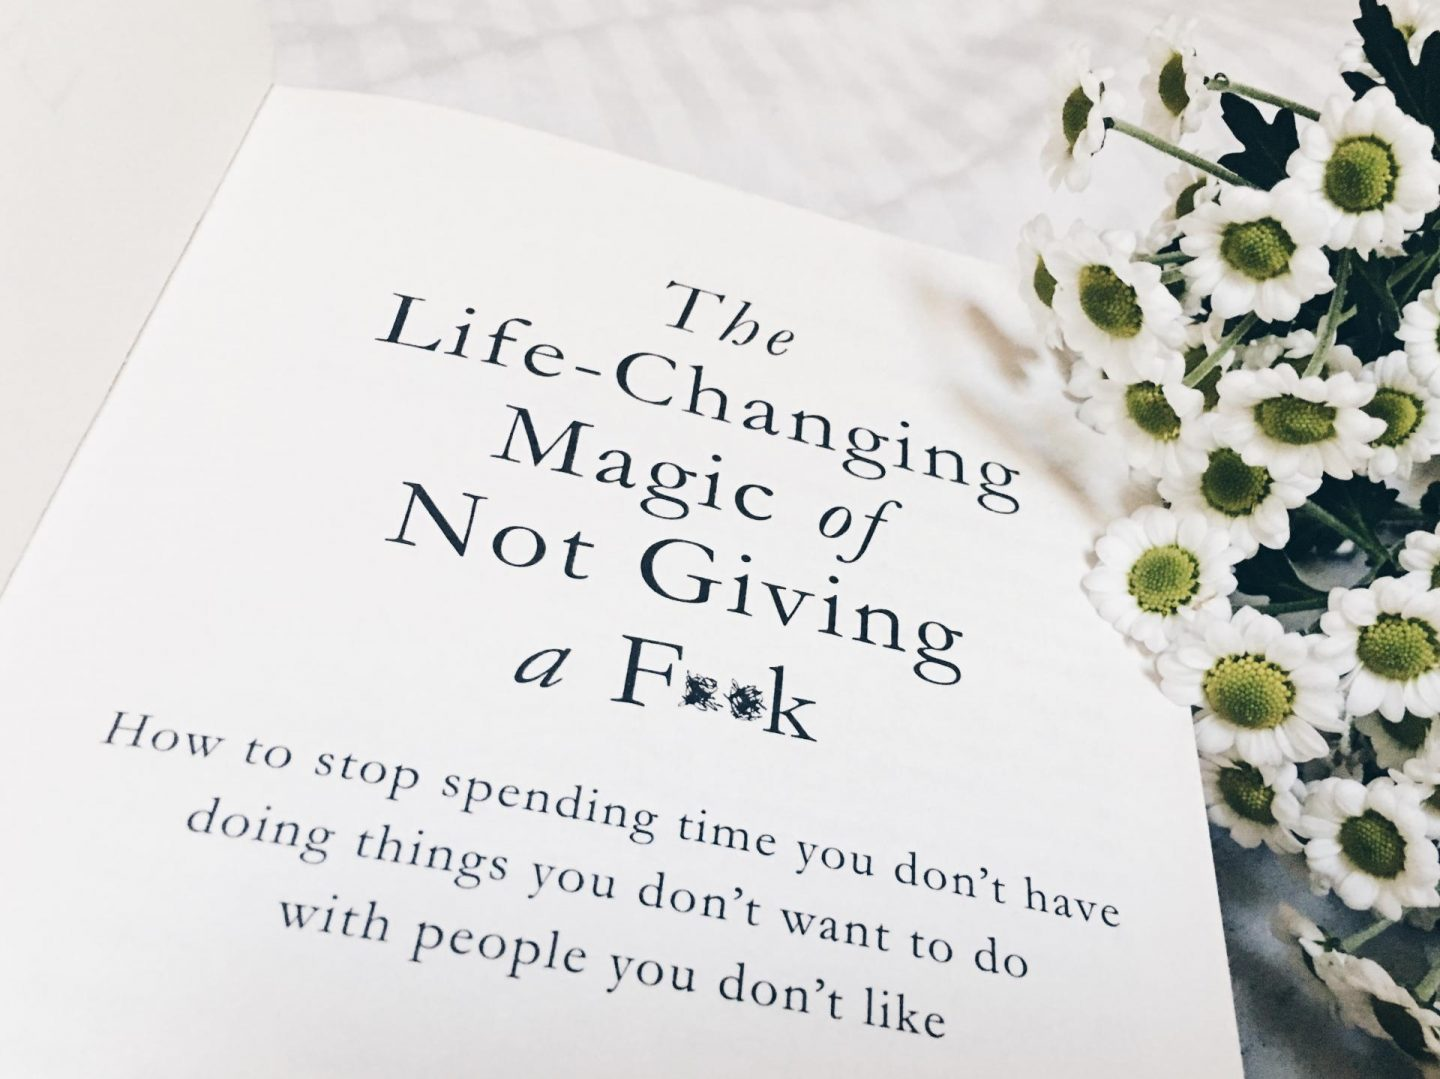 3 important lessons from 'The Life-Changing Magic of Not Giving a F**k'